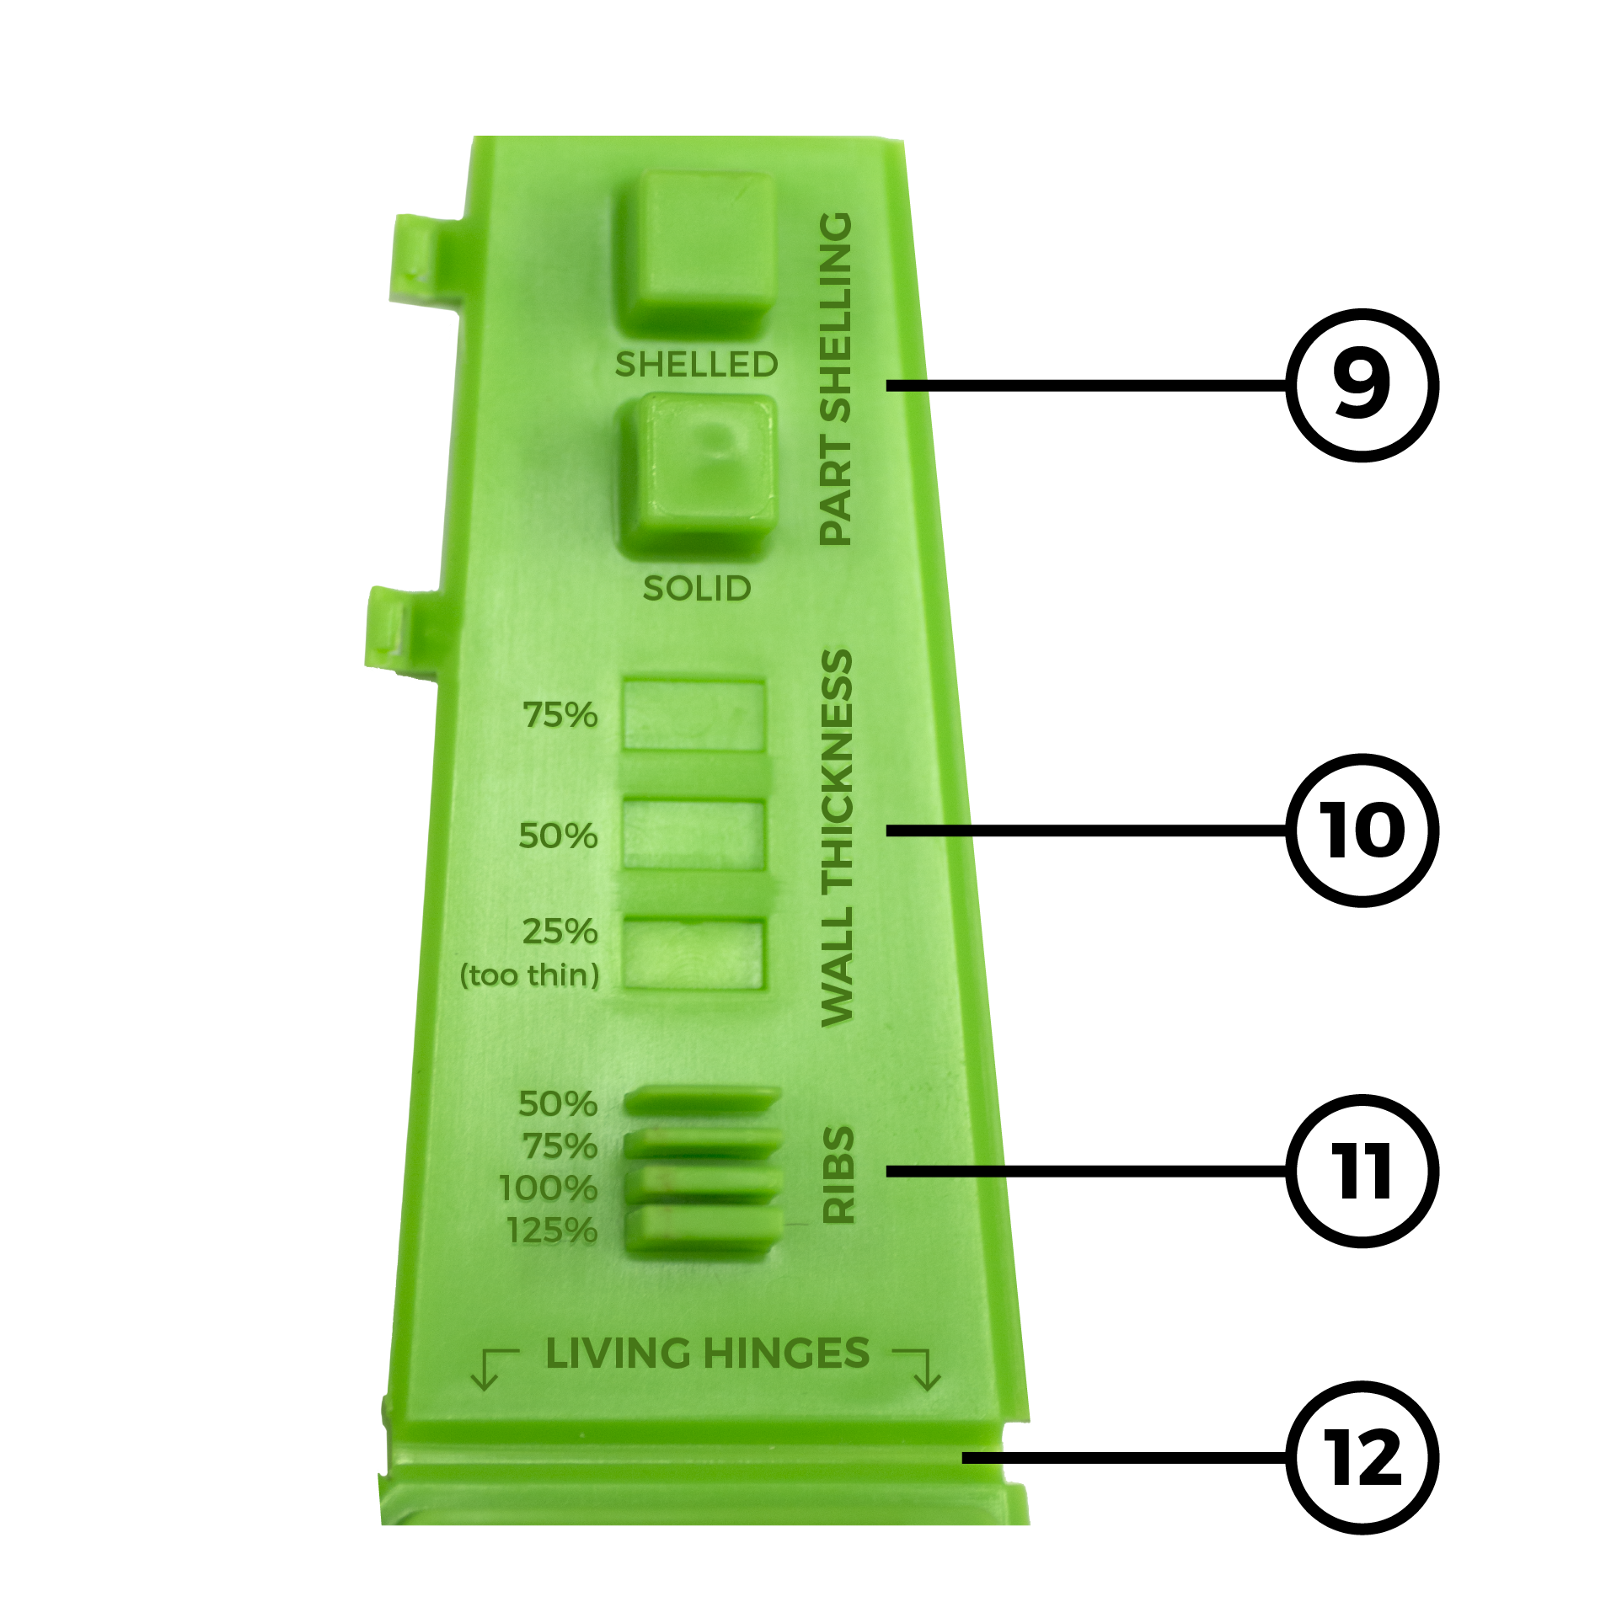 Jaycon Systems Injection Molding Design Tool Pencil Holder Guide Process Flow Diagram Reaction Moulding Plastic Thickness